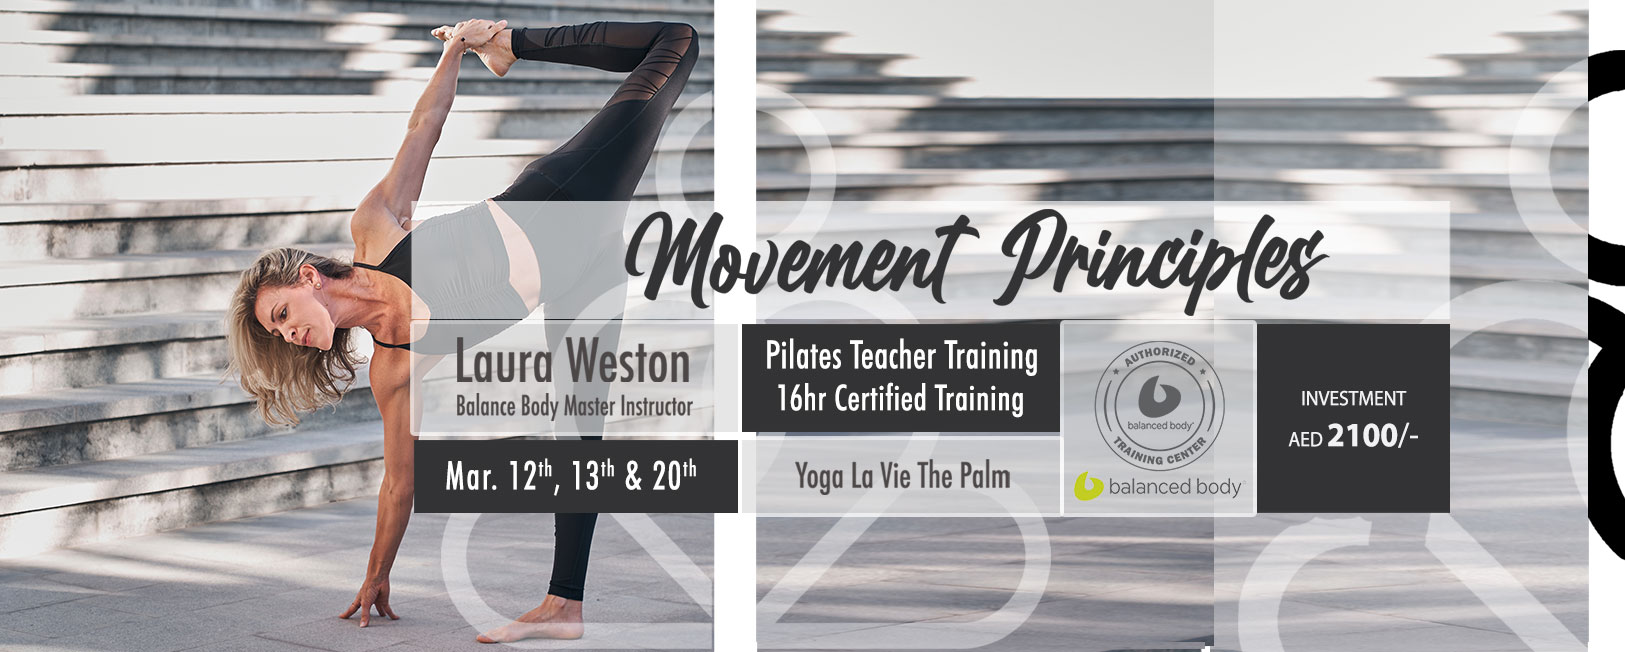 movement-principles-training-session-march21